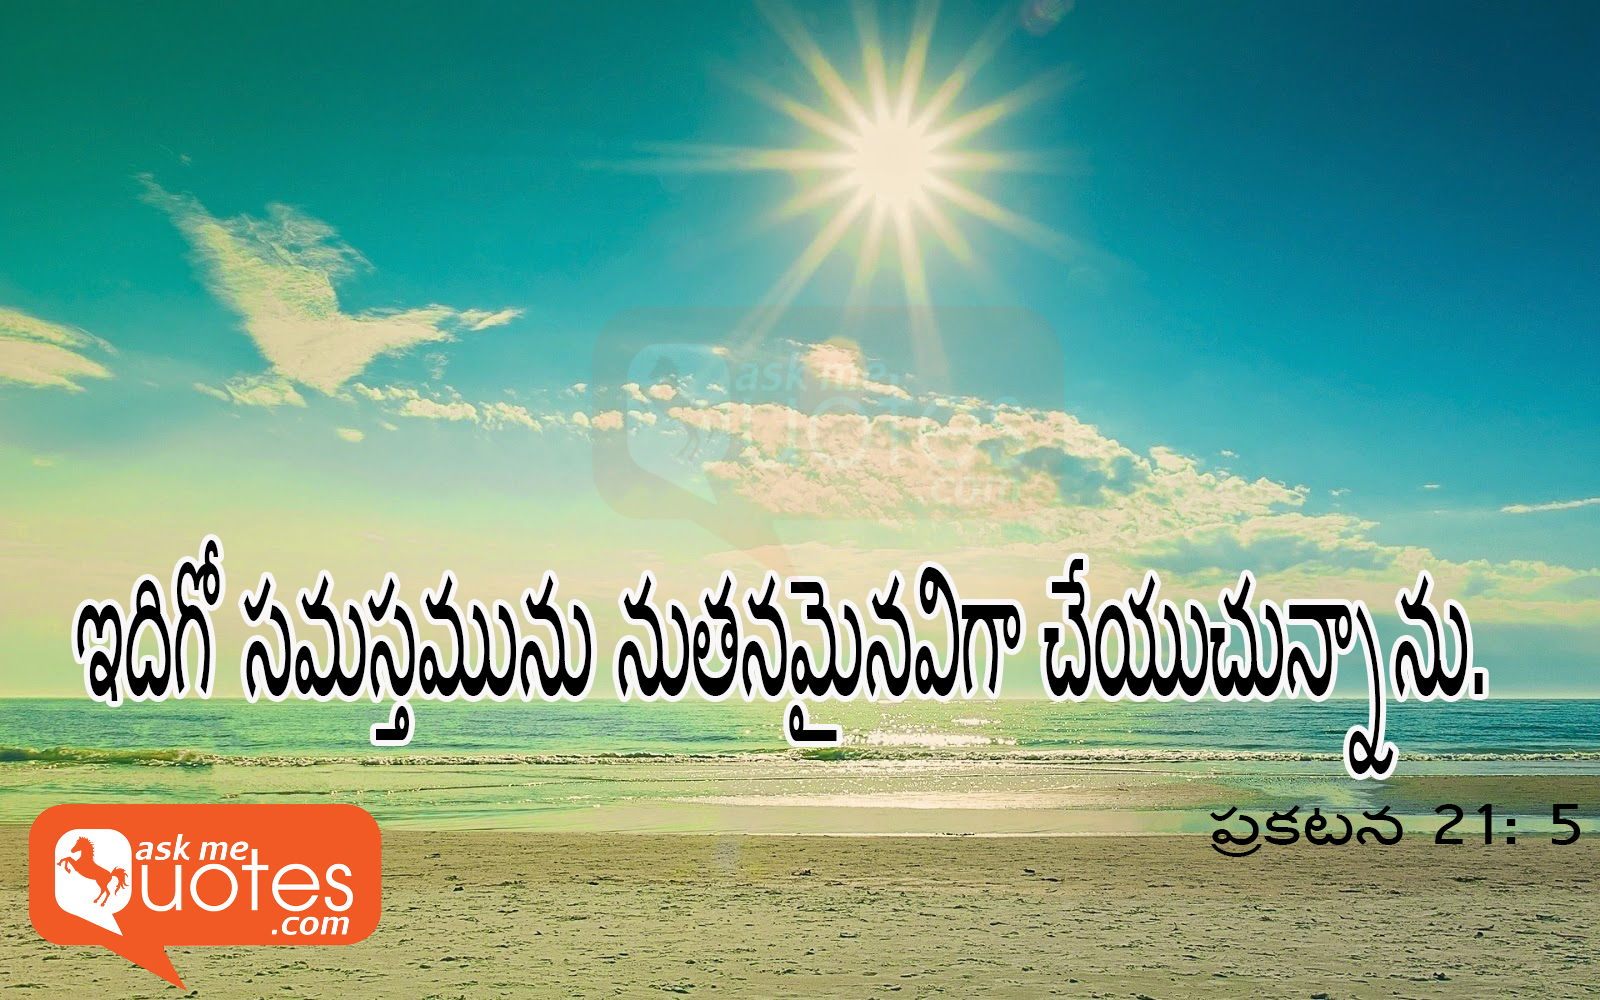 Telugu bible quotes and hd pitcher with beautiful images and life bible quotes with pitcher and life quotes altavistaventures Choice Image